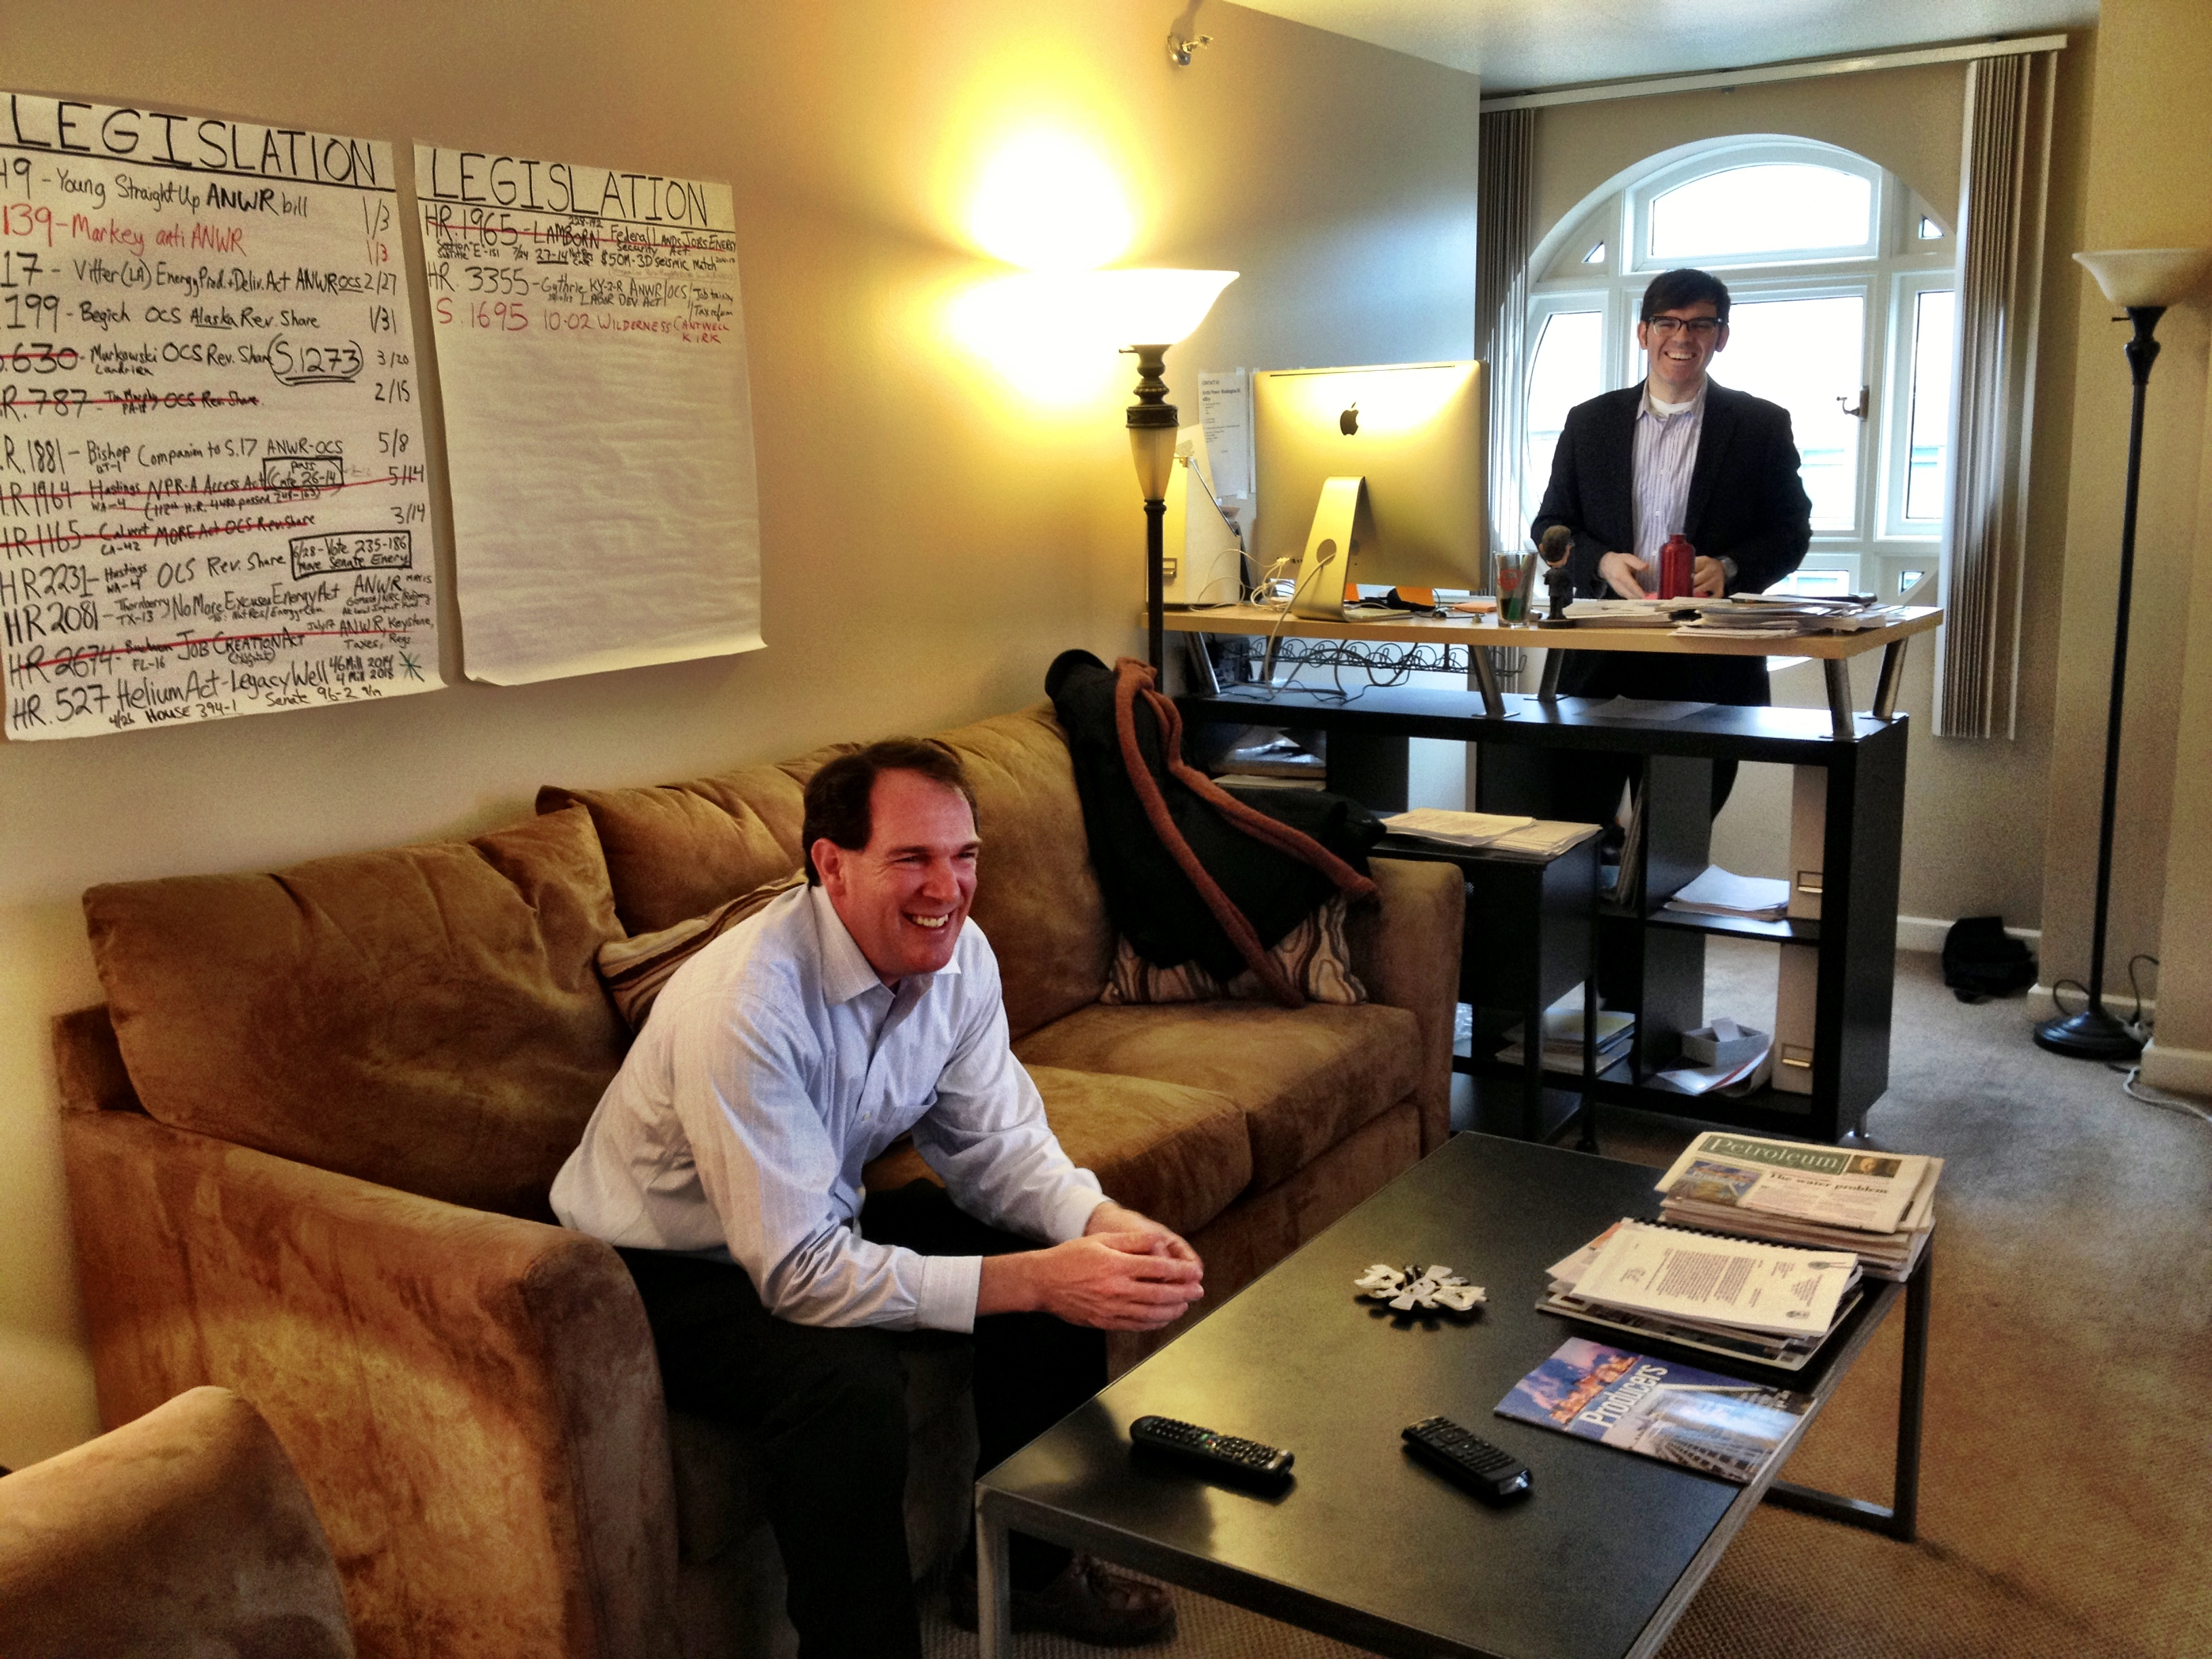 Adrian Herrera (seated) and Michael Shively, at Arctic Power's office in Washington, D.C.